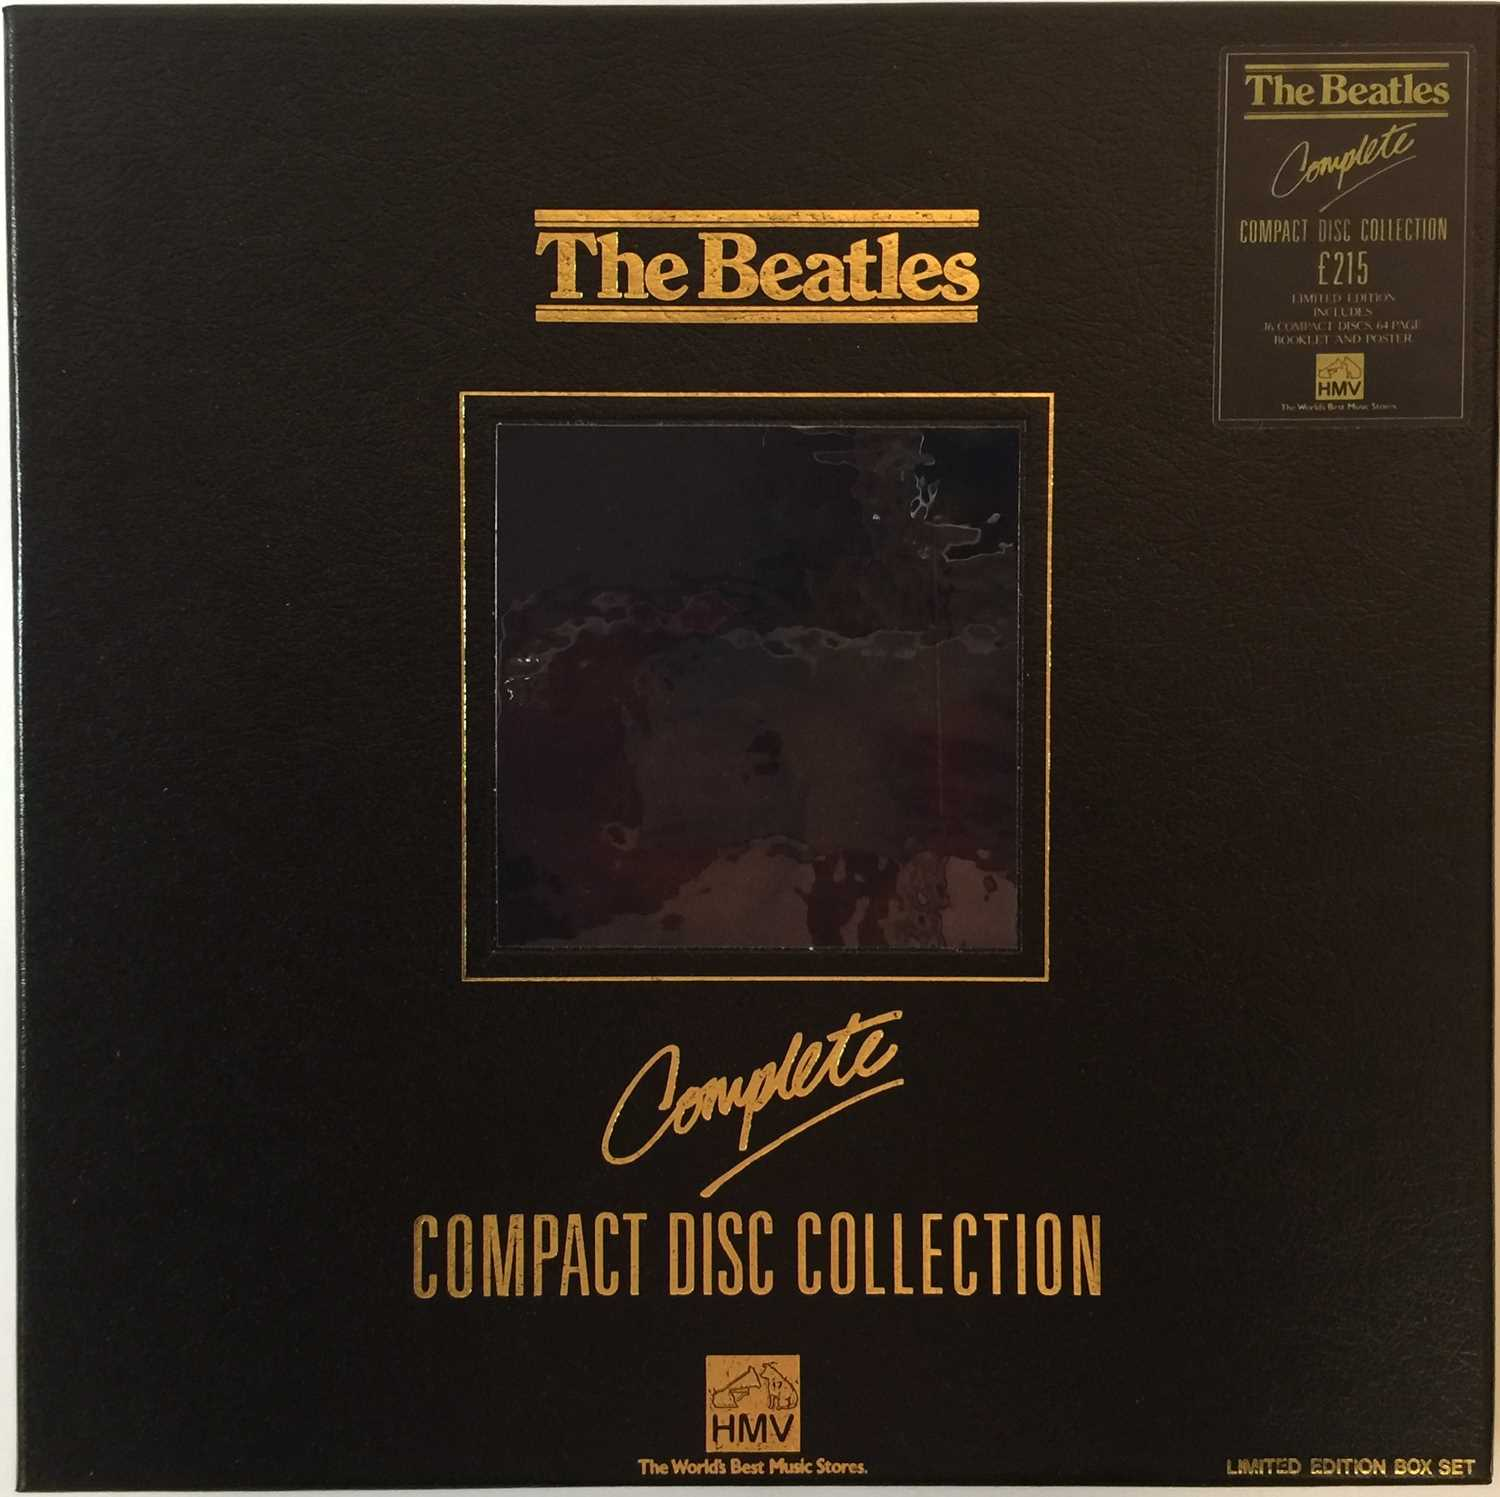 Lot 39 - THE BEATLES - COMPACT DISC COLLECTION (HMV BOX SET - WITH SIGNED COPIES)